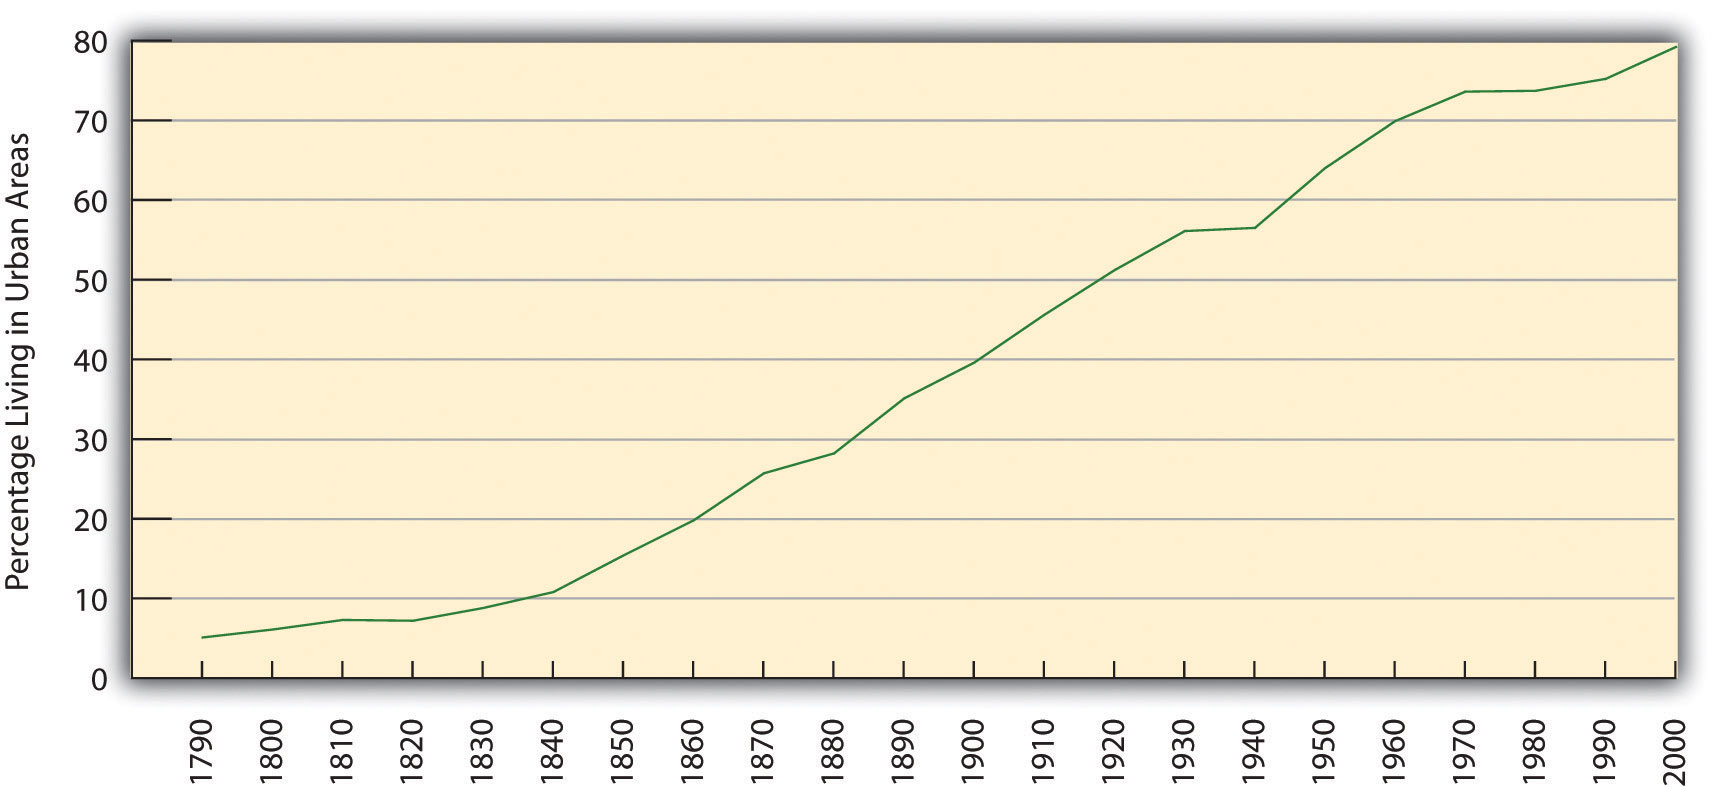 Urbanization in the United States (Percentage Living in Urban Areas), has grown from 1790 to 2000